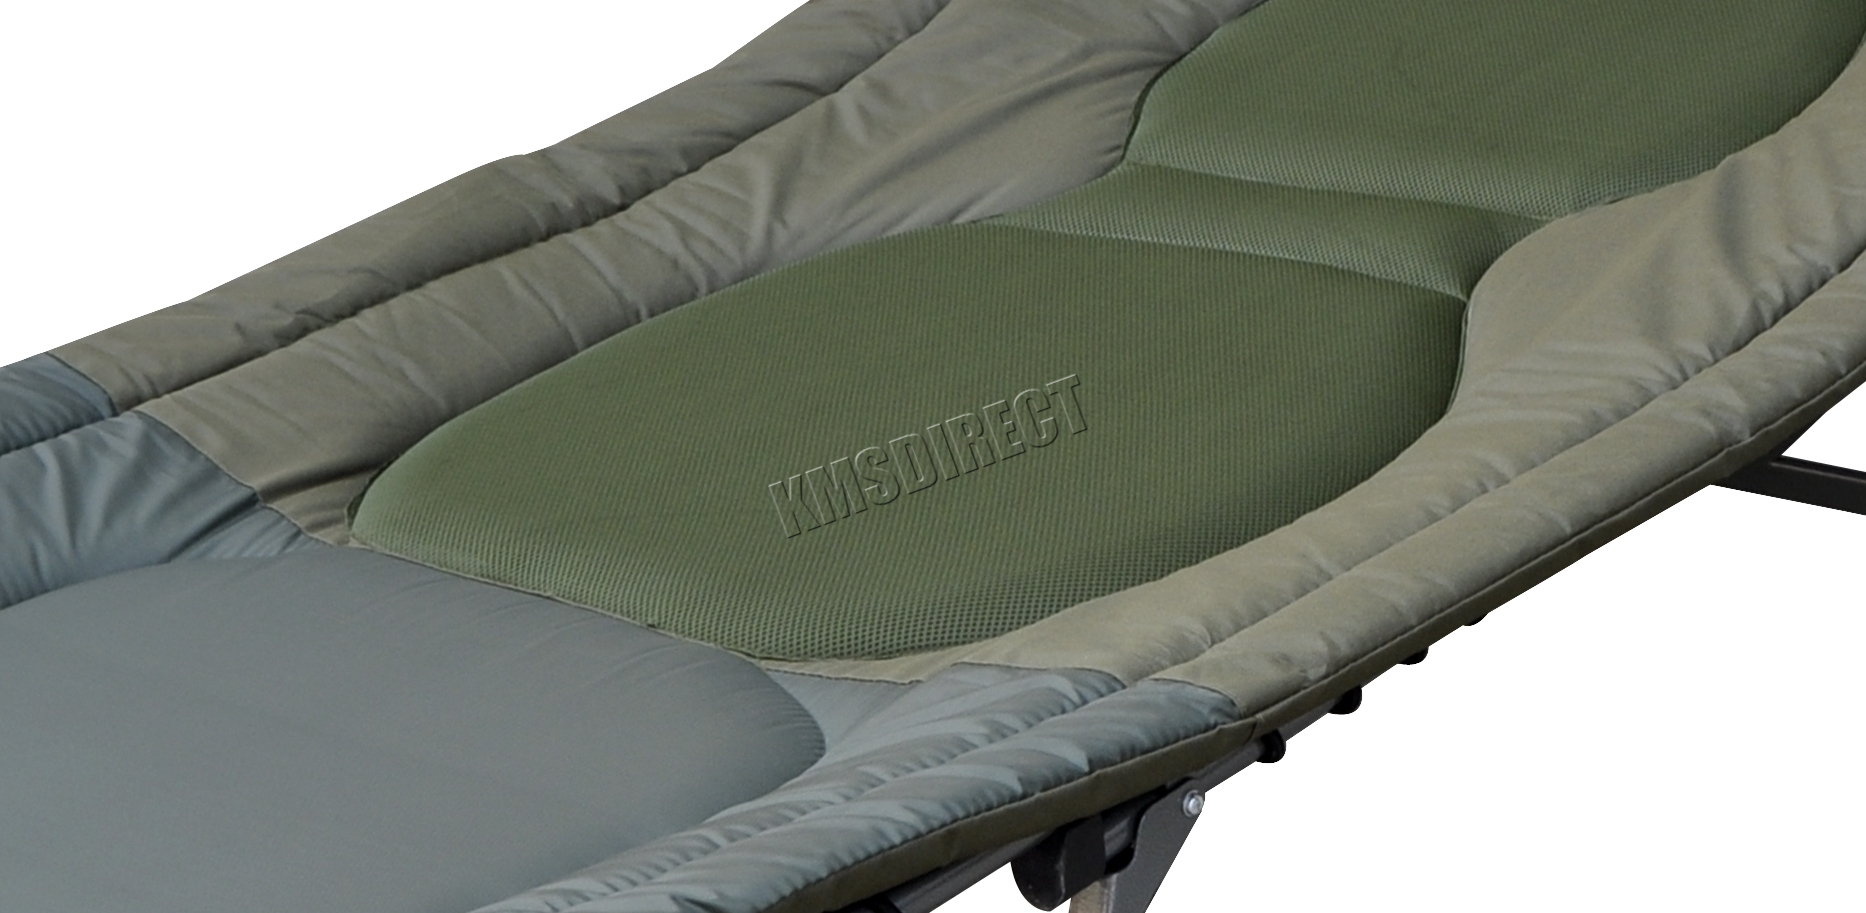 fishing bed chair used back massagers for chairs portable carp bedchair camping 6